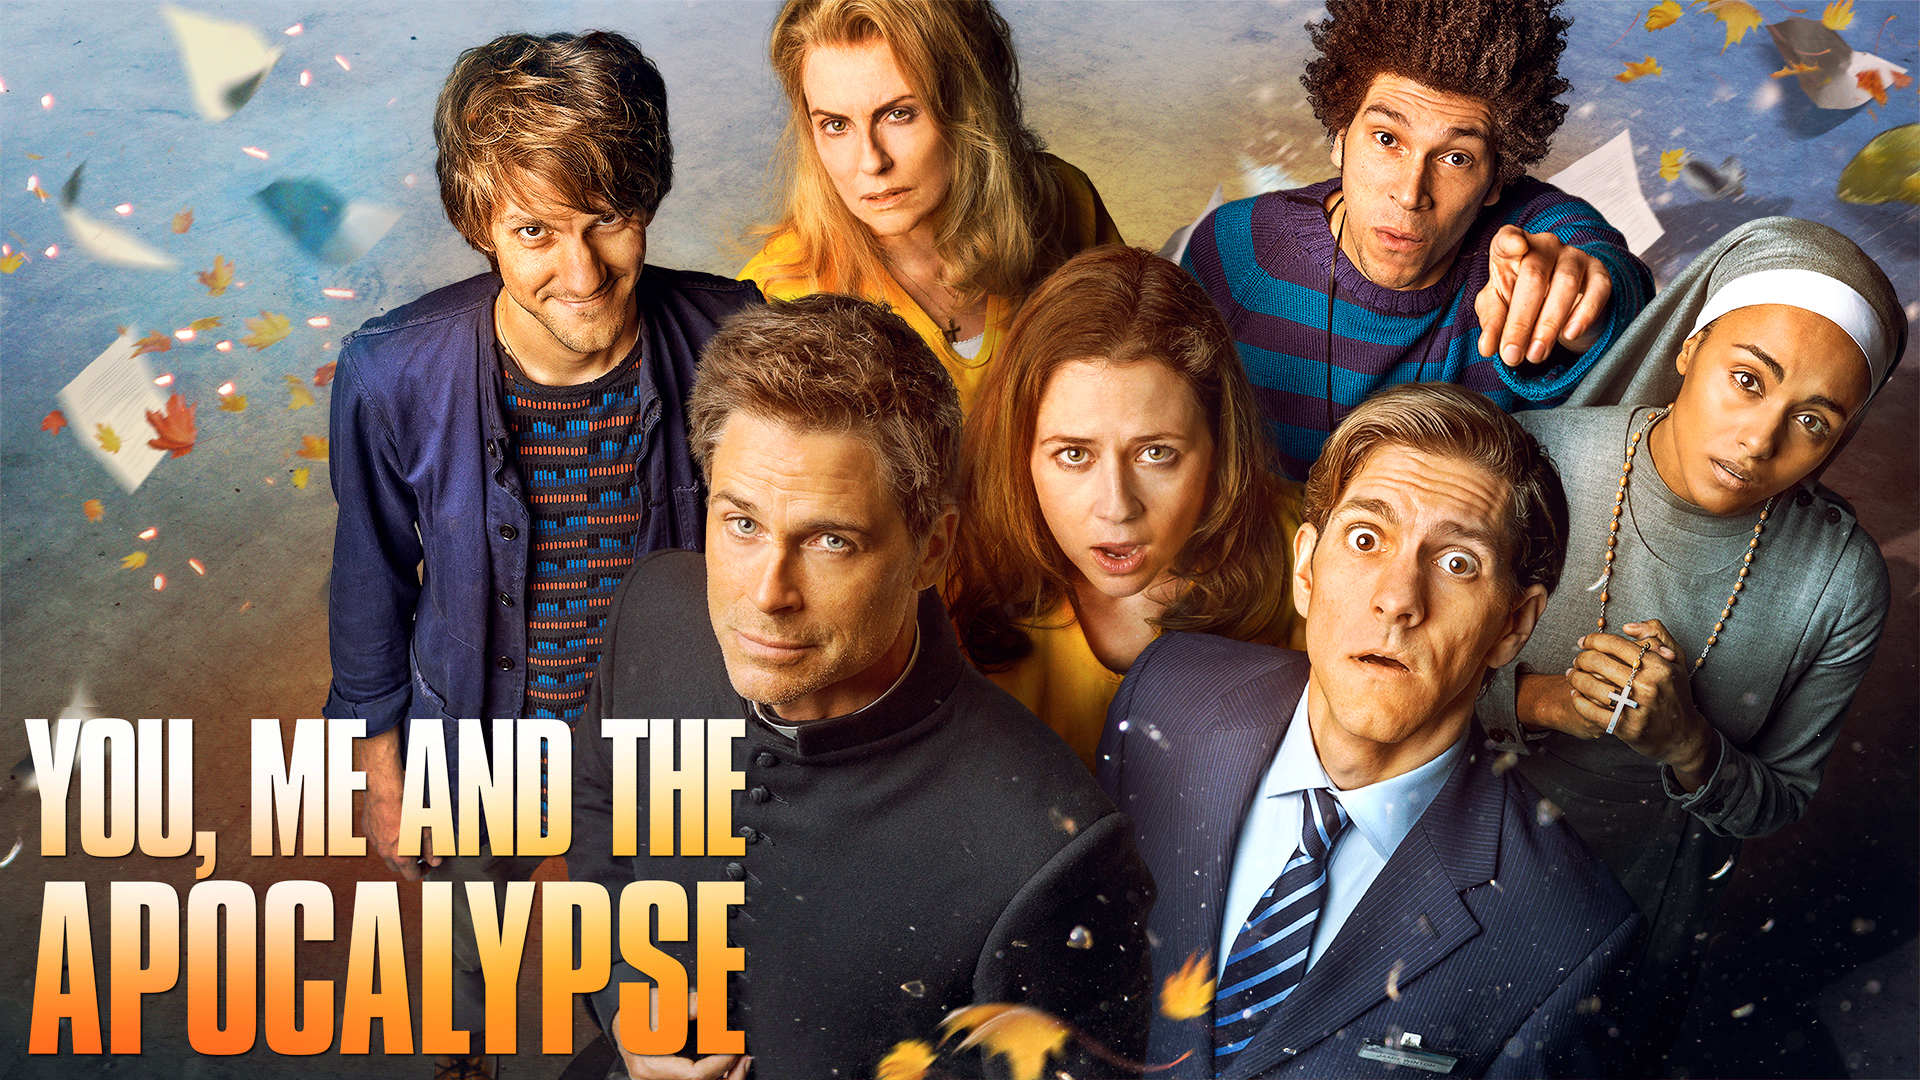 The cast for upcoming series You, Me and the Apocalypse includes Rob Lowe and Jenna Fischer.... [+] (Credit: NBC)